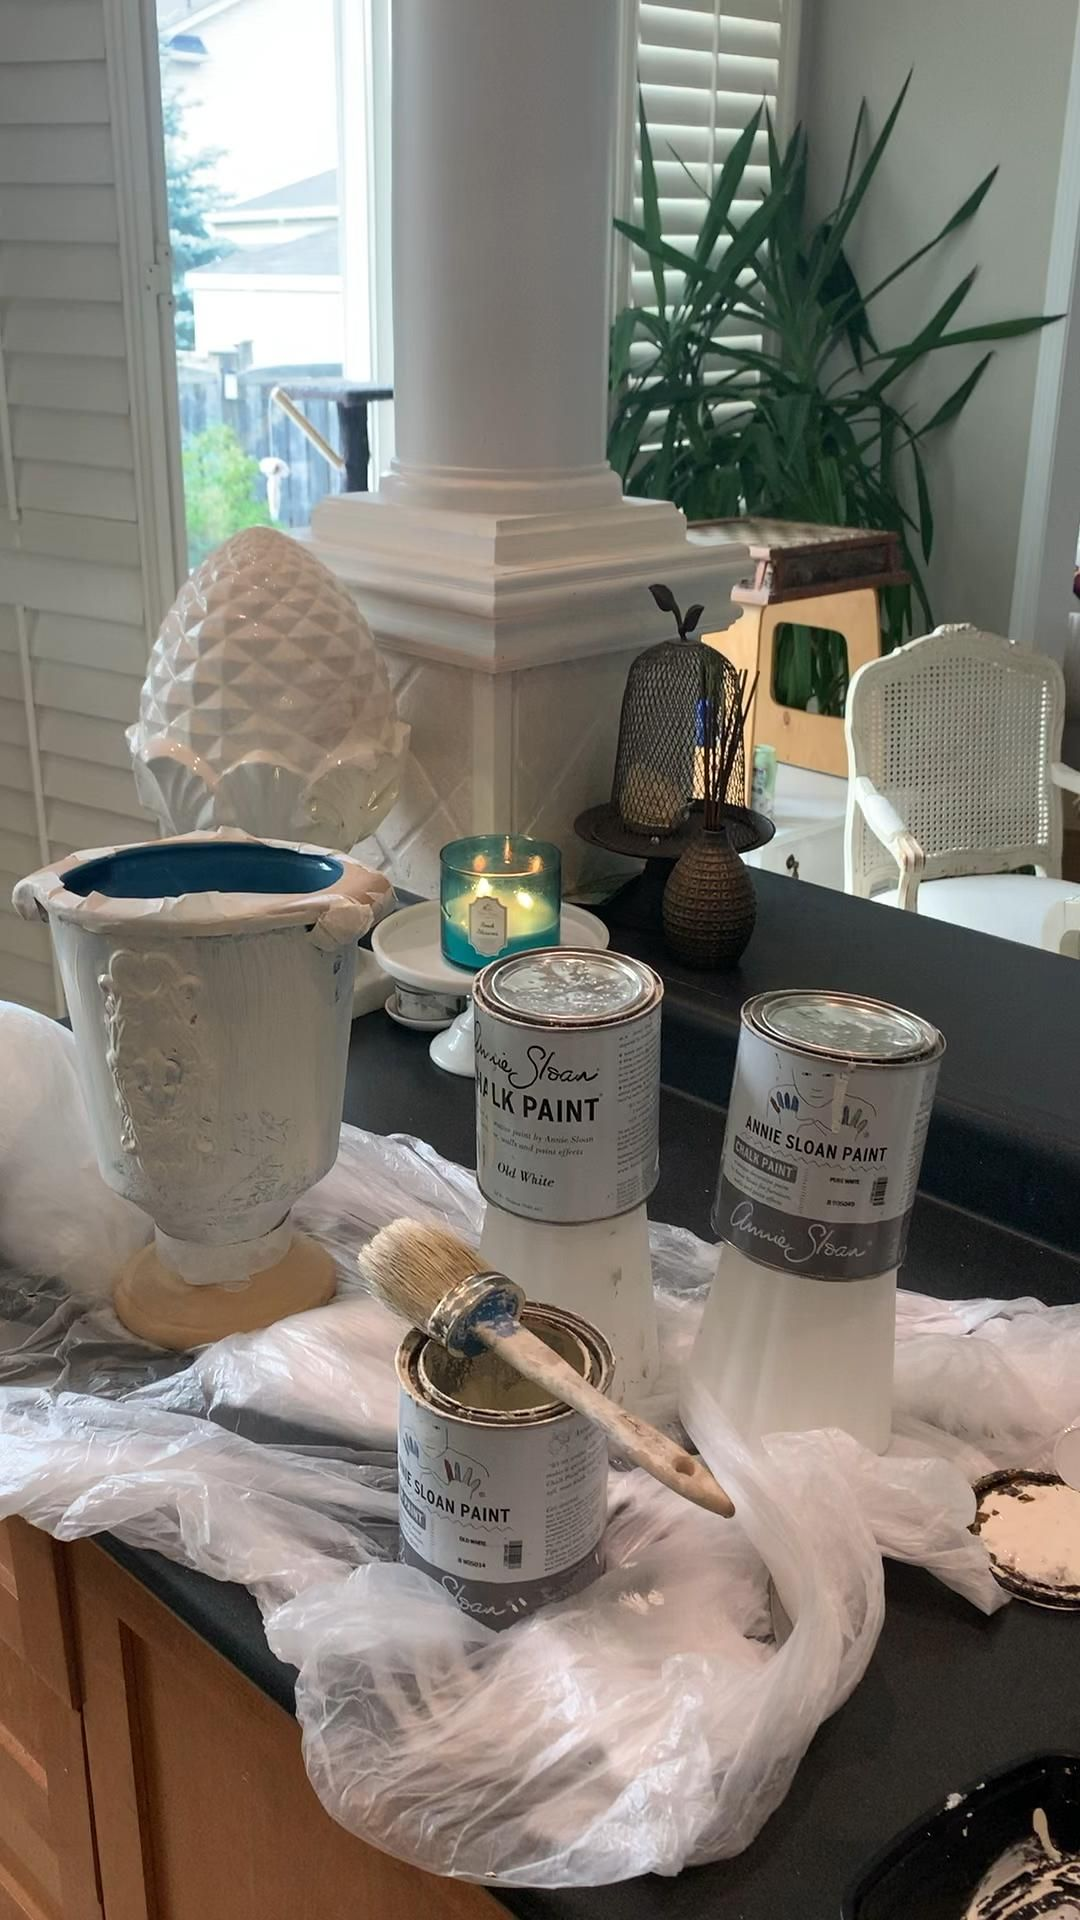 Do you love cracking open a fresh we can of Annie Sloan Paint as much as I do? I know it's weird but it is the little things in life.   #AnnieSloanchalkpaint #Handpainted #paintitbeautiful #paintedfurniture #distressed  #houseprojects #vintagefinds